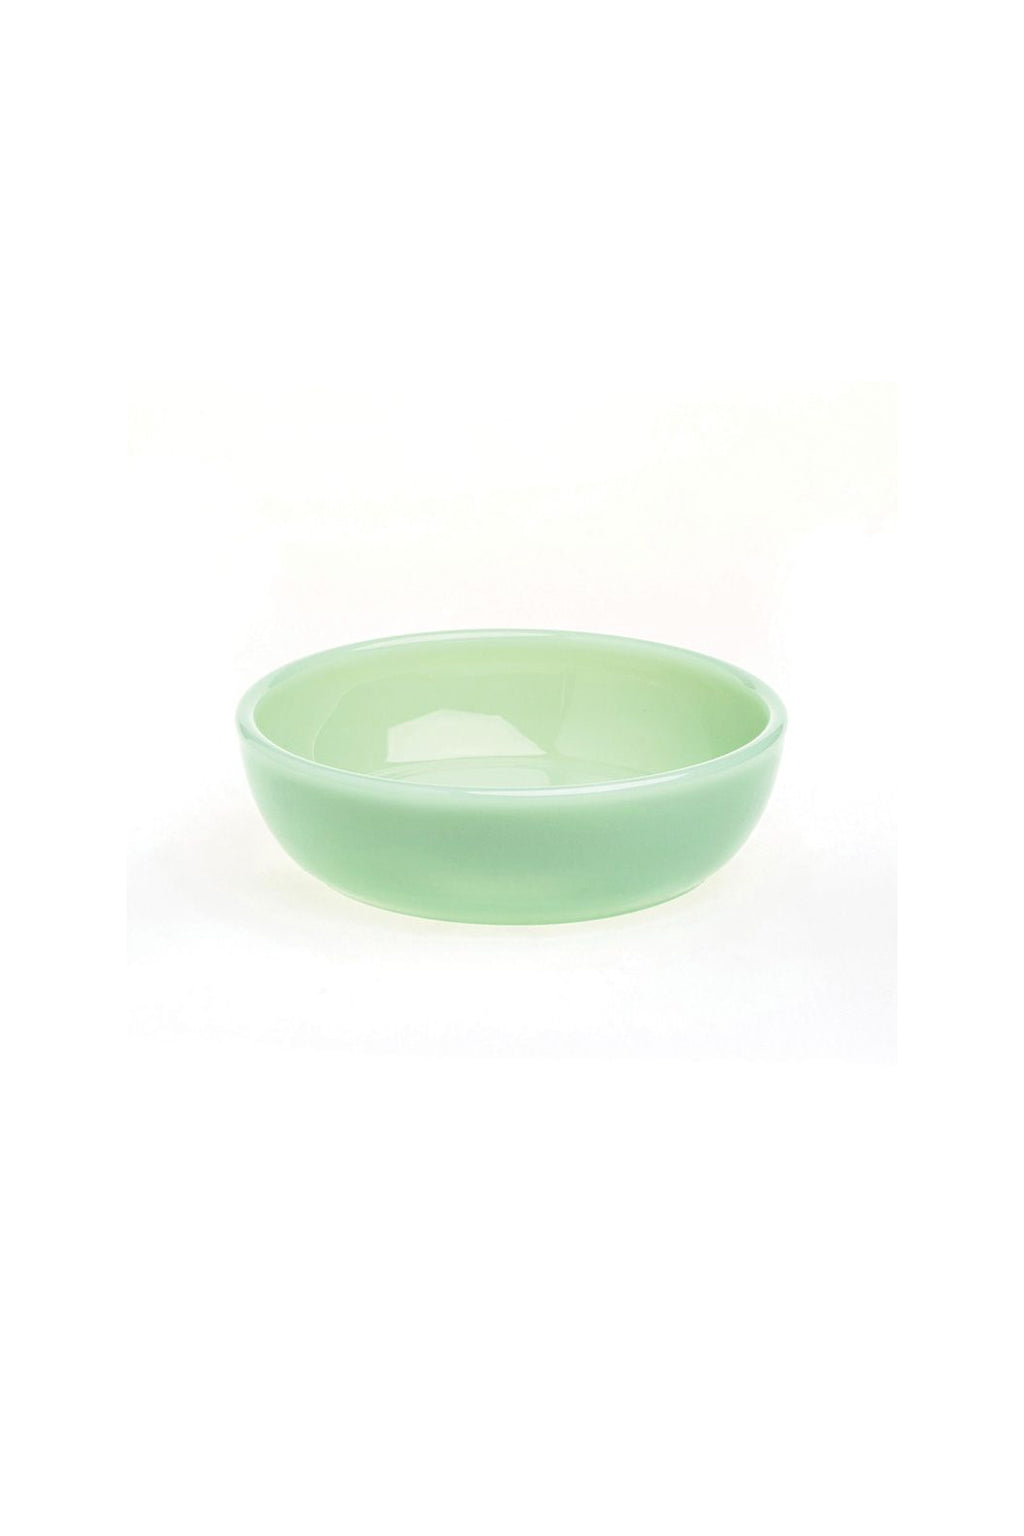 "Mosser Glass 4.5"" Tableware Bowl - Jadeite"